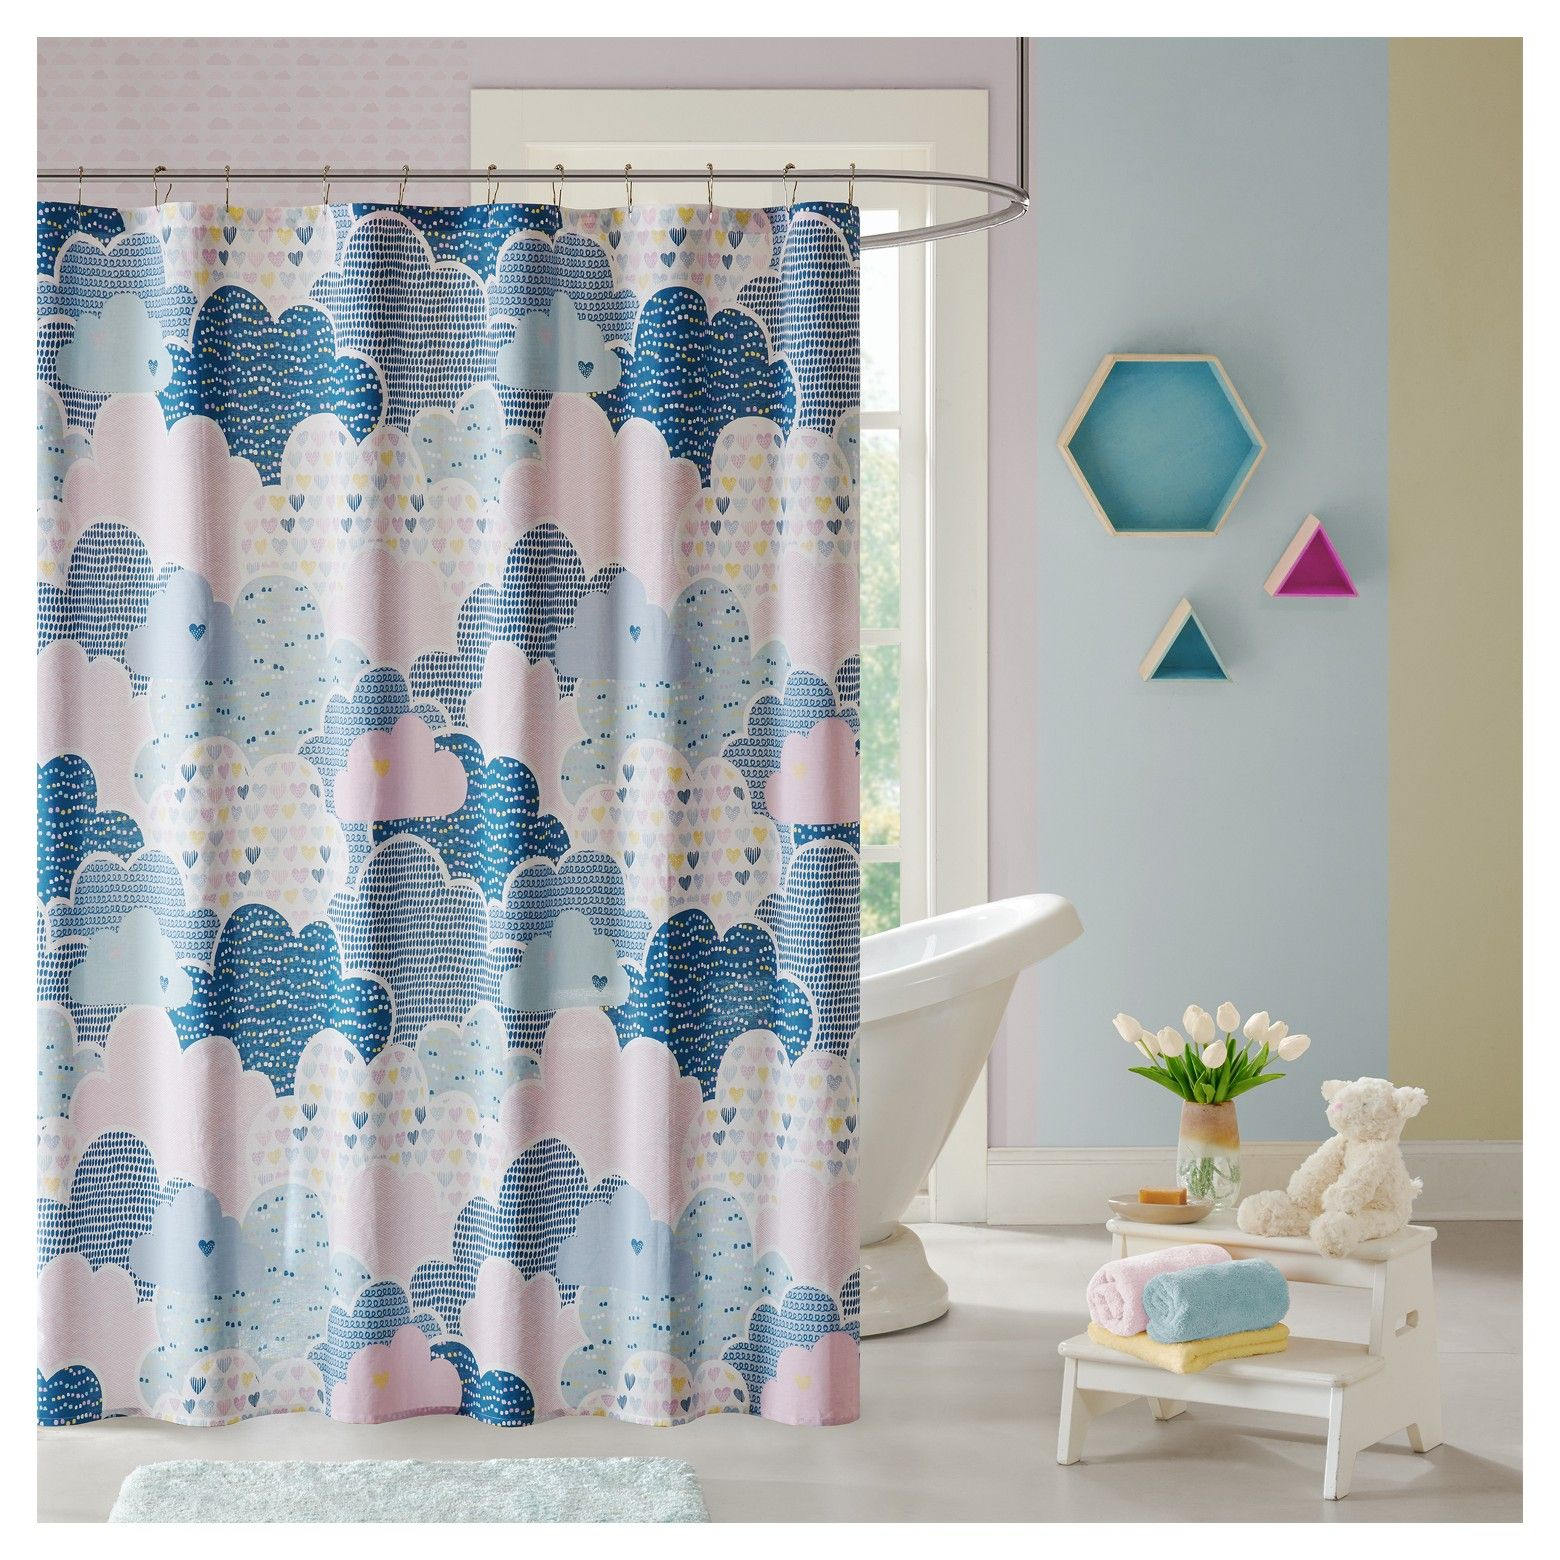 Float Among The Clouds With The Colorful Euphoria Shower Curtain